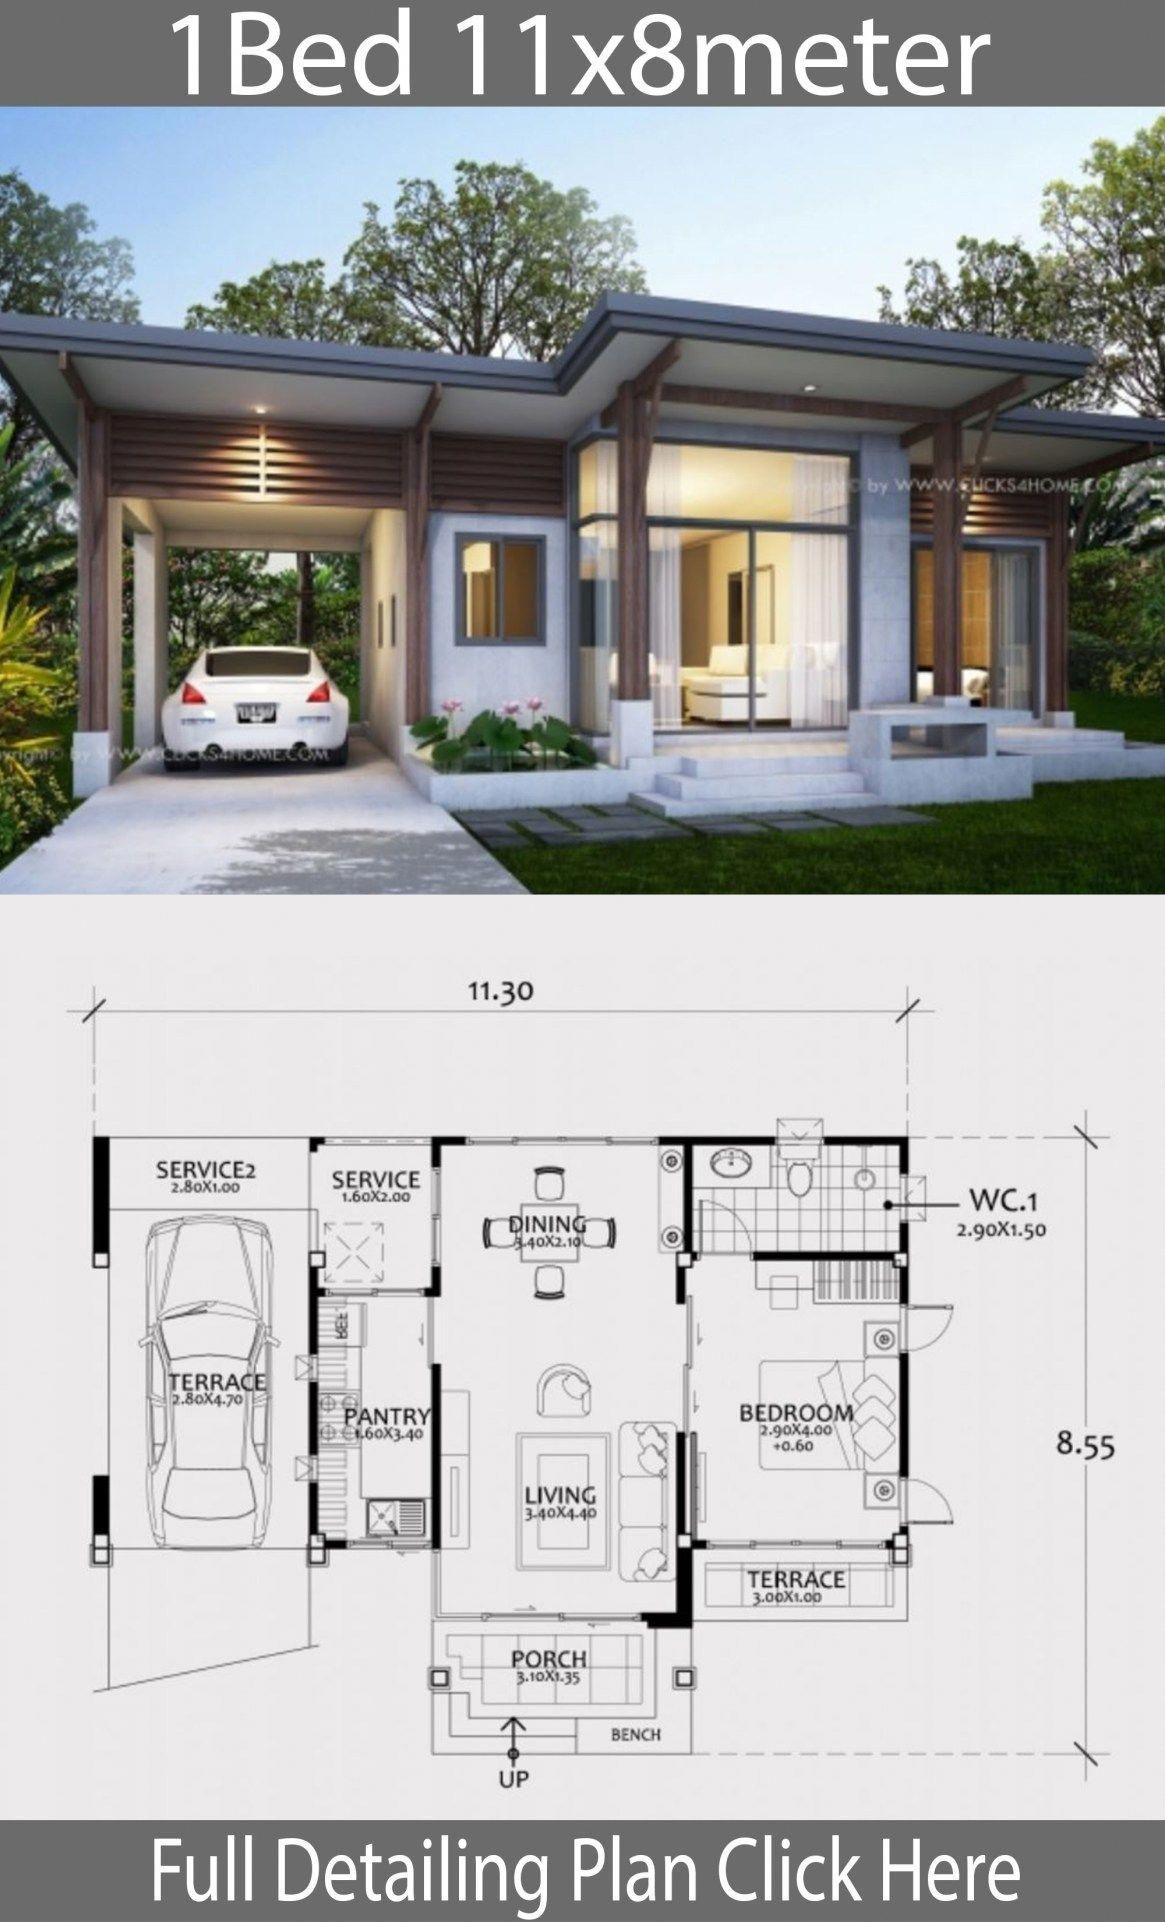 Home Design Plan 11x8m With One Bedroom Home Design With Plansearch Homeinteriordesigns Contemporary House Plans Modern Bungalow House Bungalow House Design